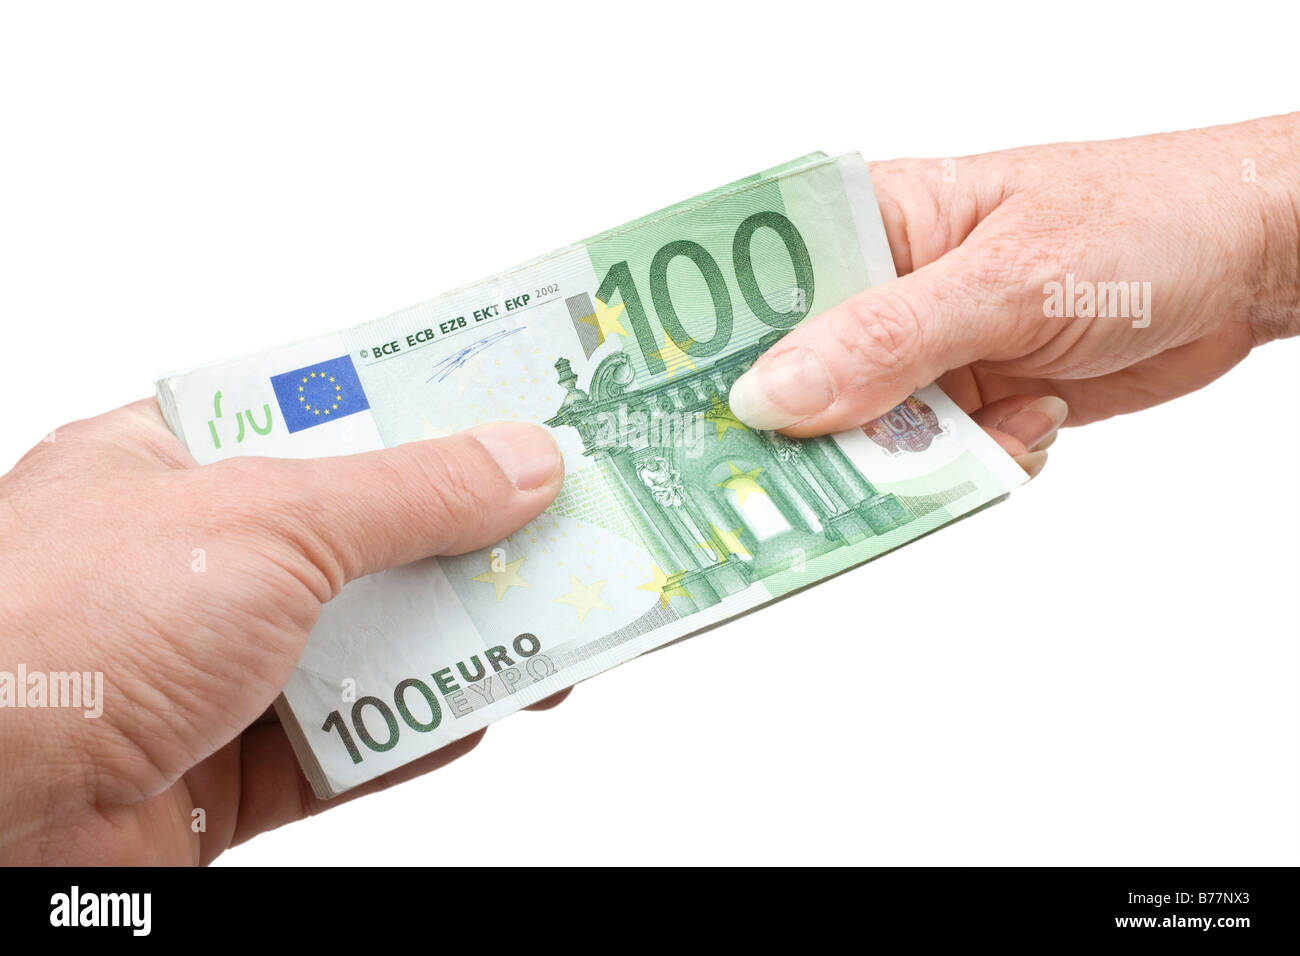 100 euro bill being handed over, hands of a man and a woman - Stock Image